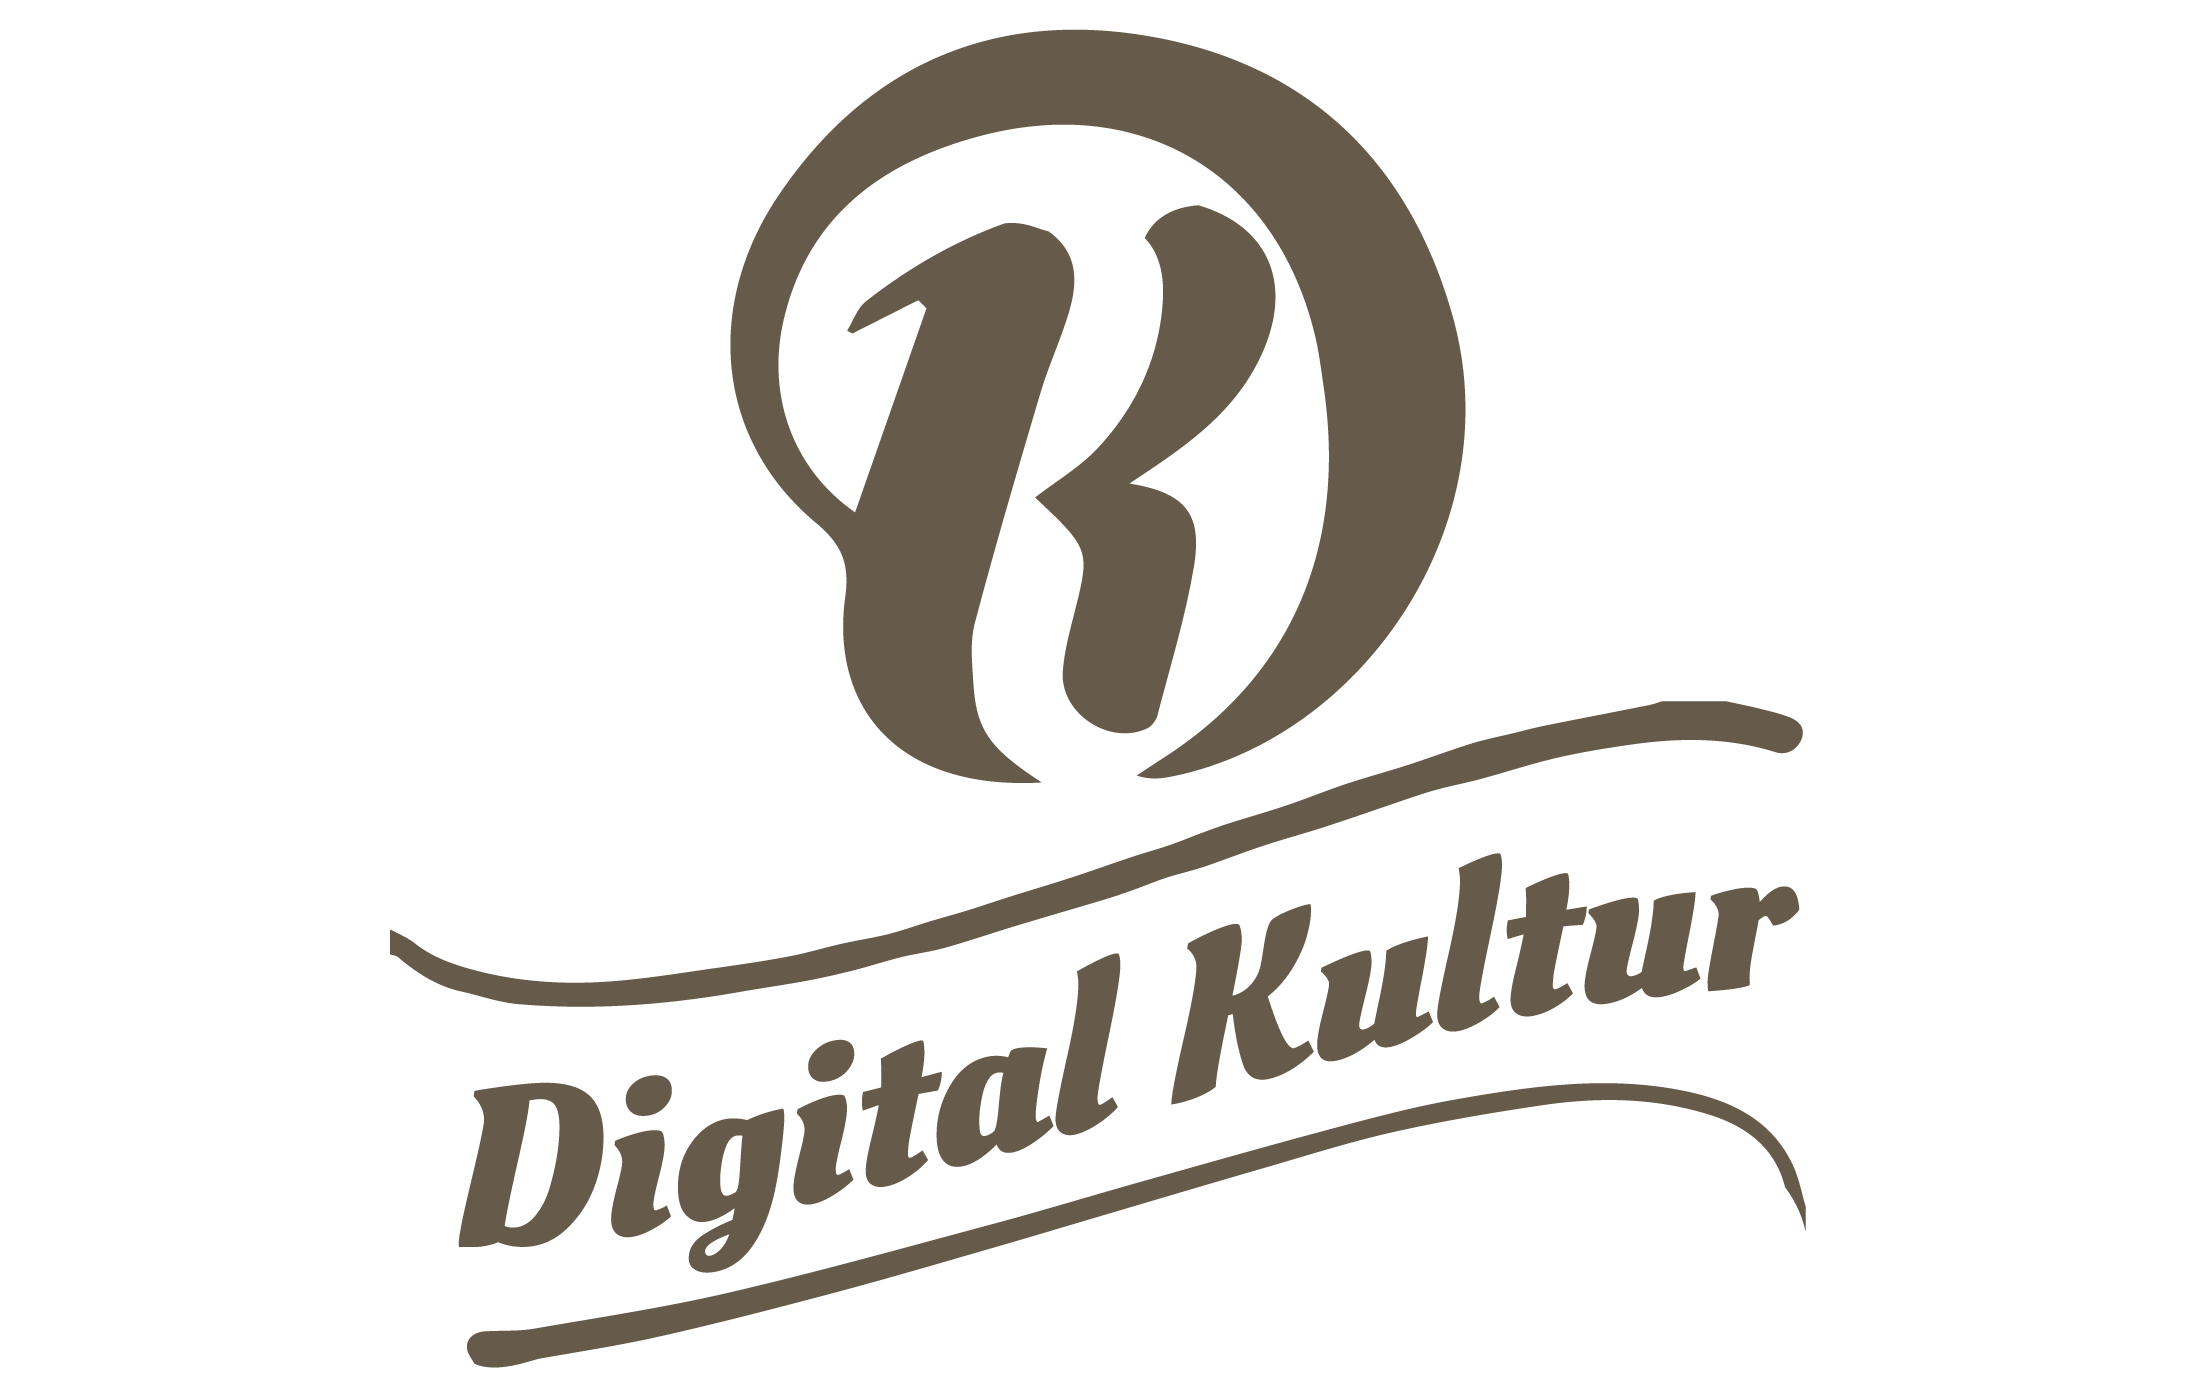 Digital Kultur GmbH